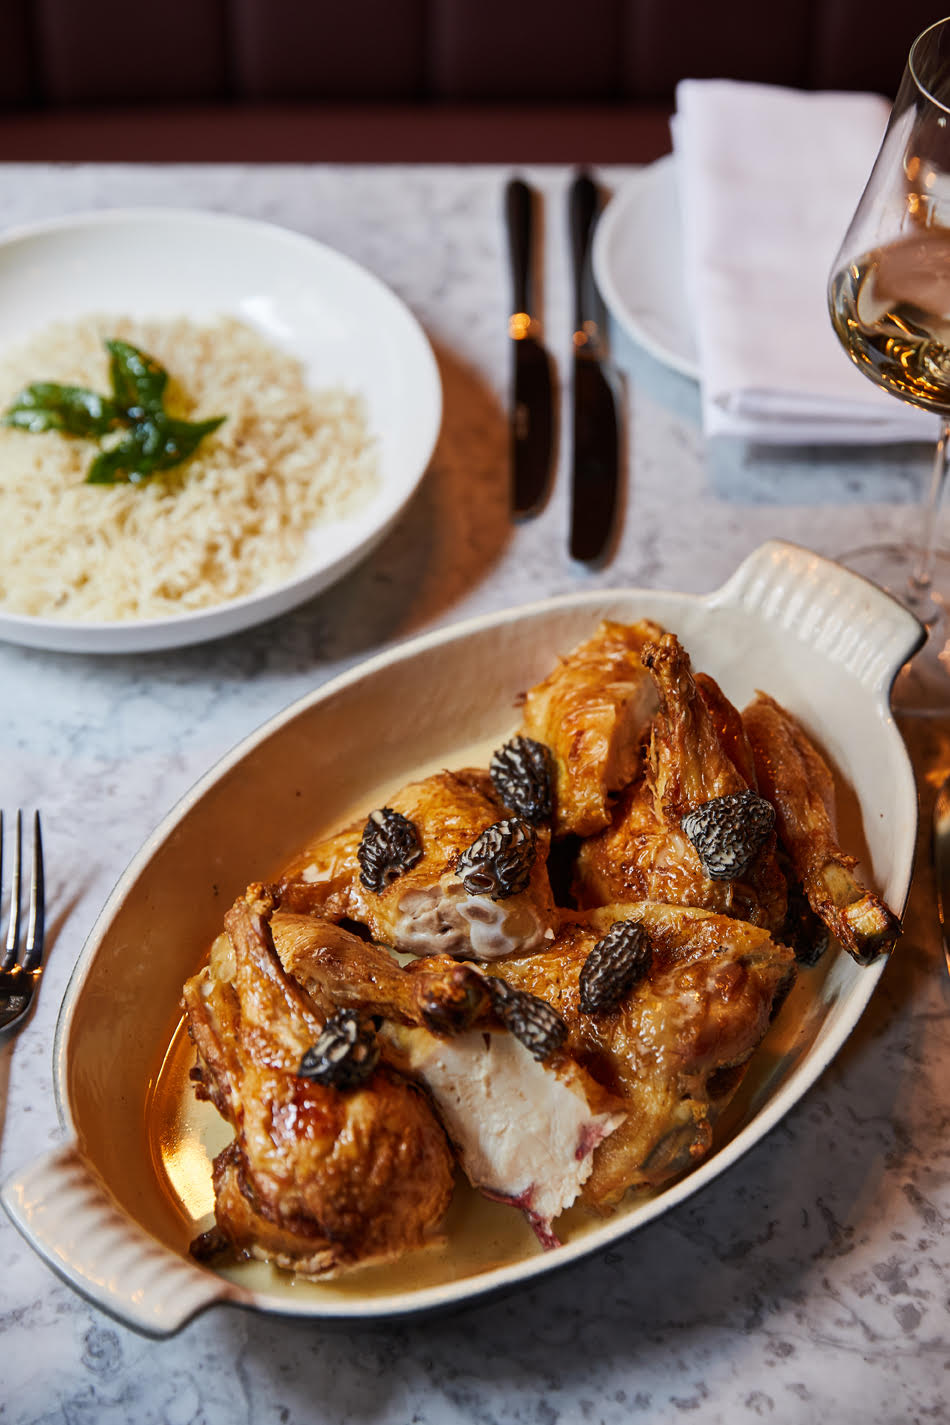 A dish of roast chicken with morel mushrooms in the foreground, on a marble table set with cutlery, and a plate of rice in the background